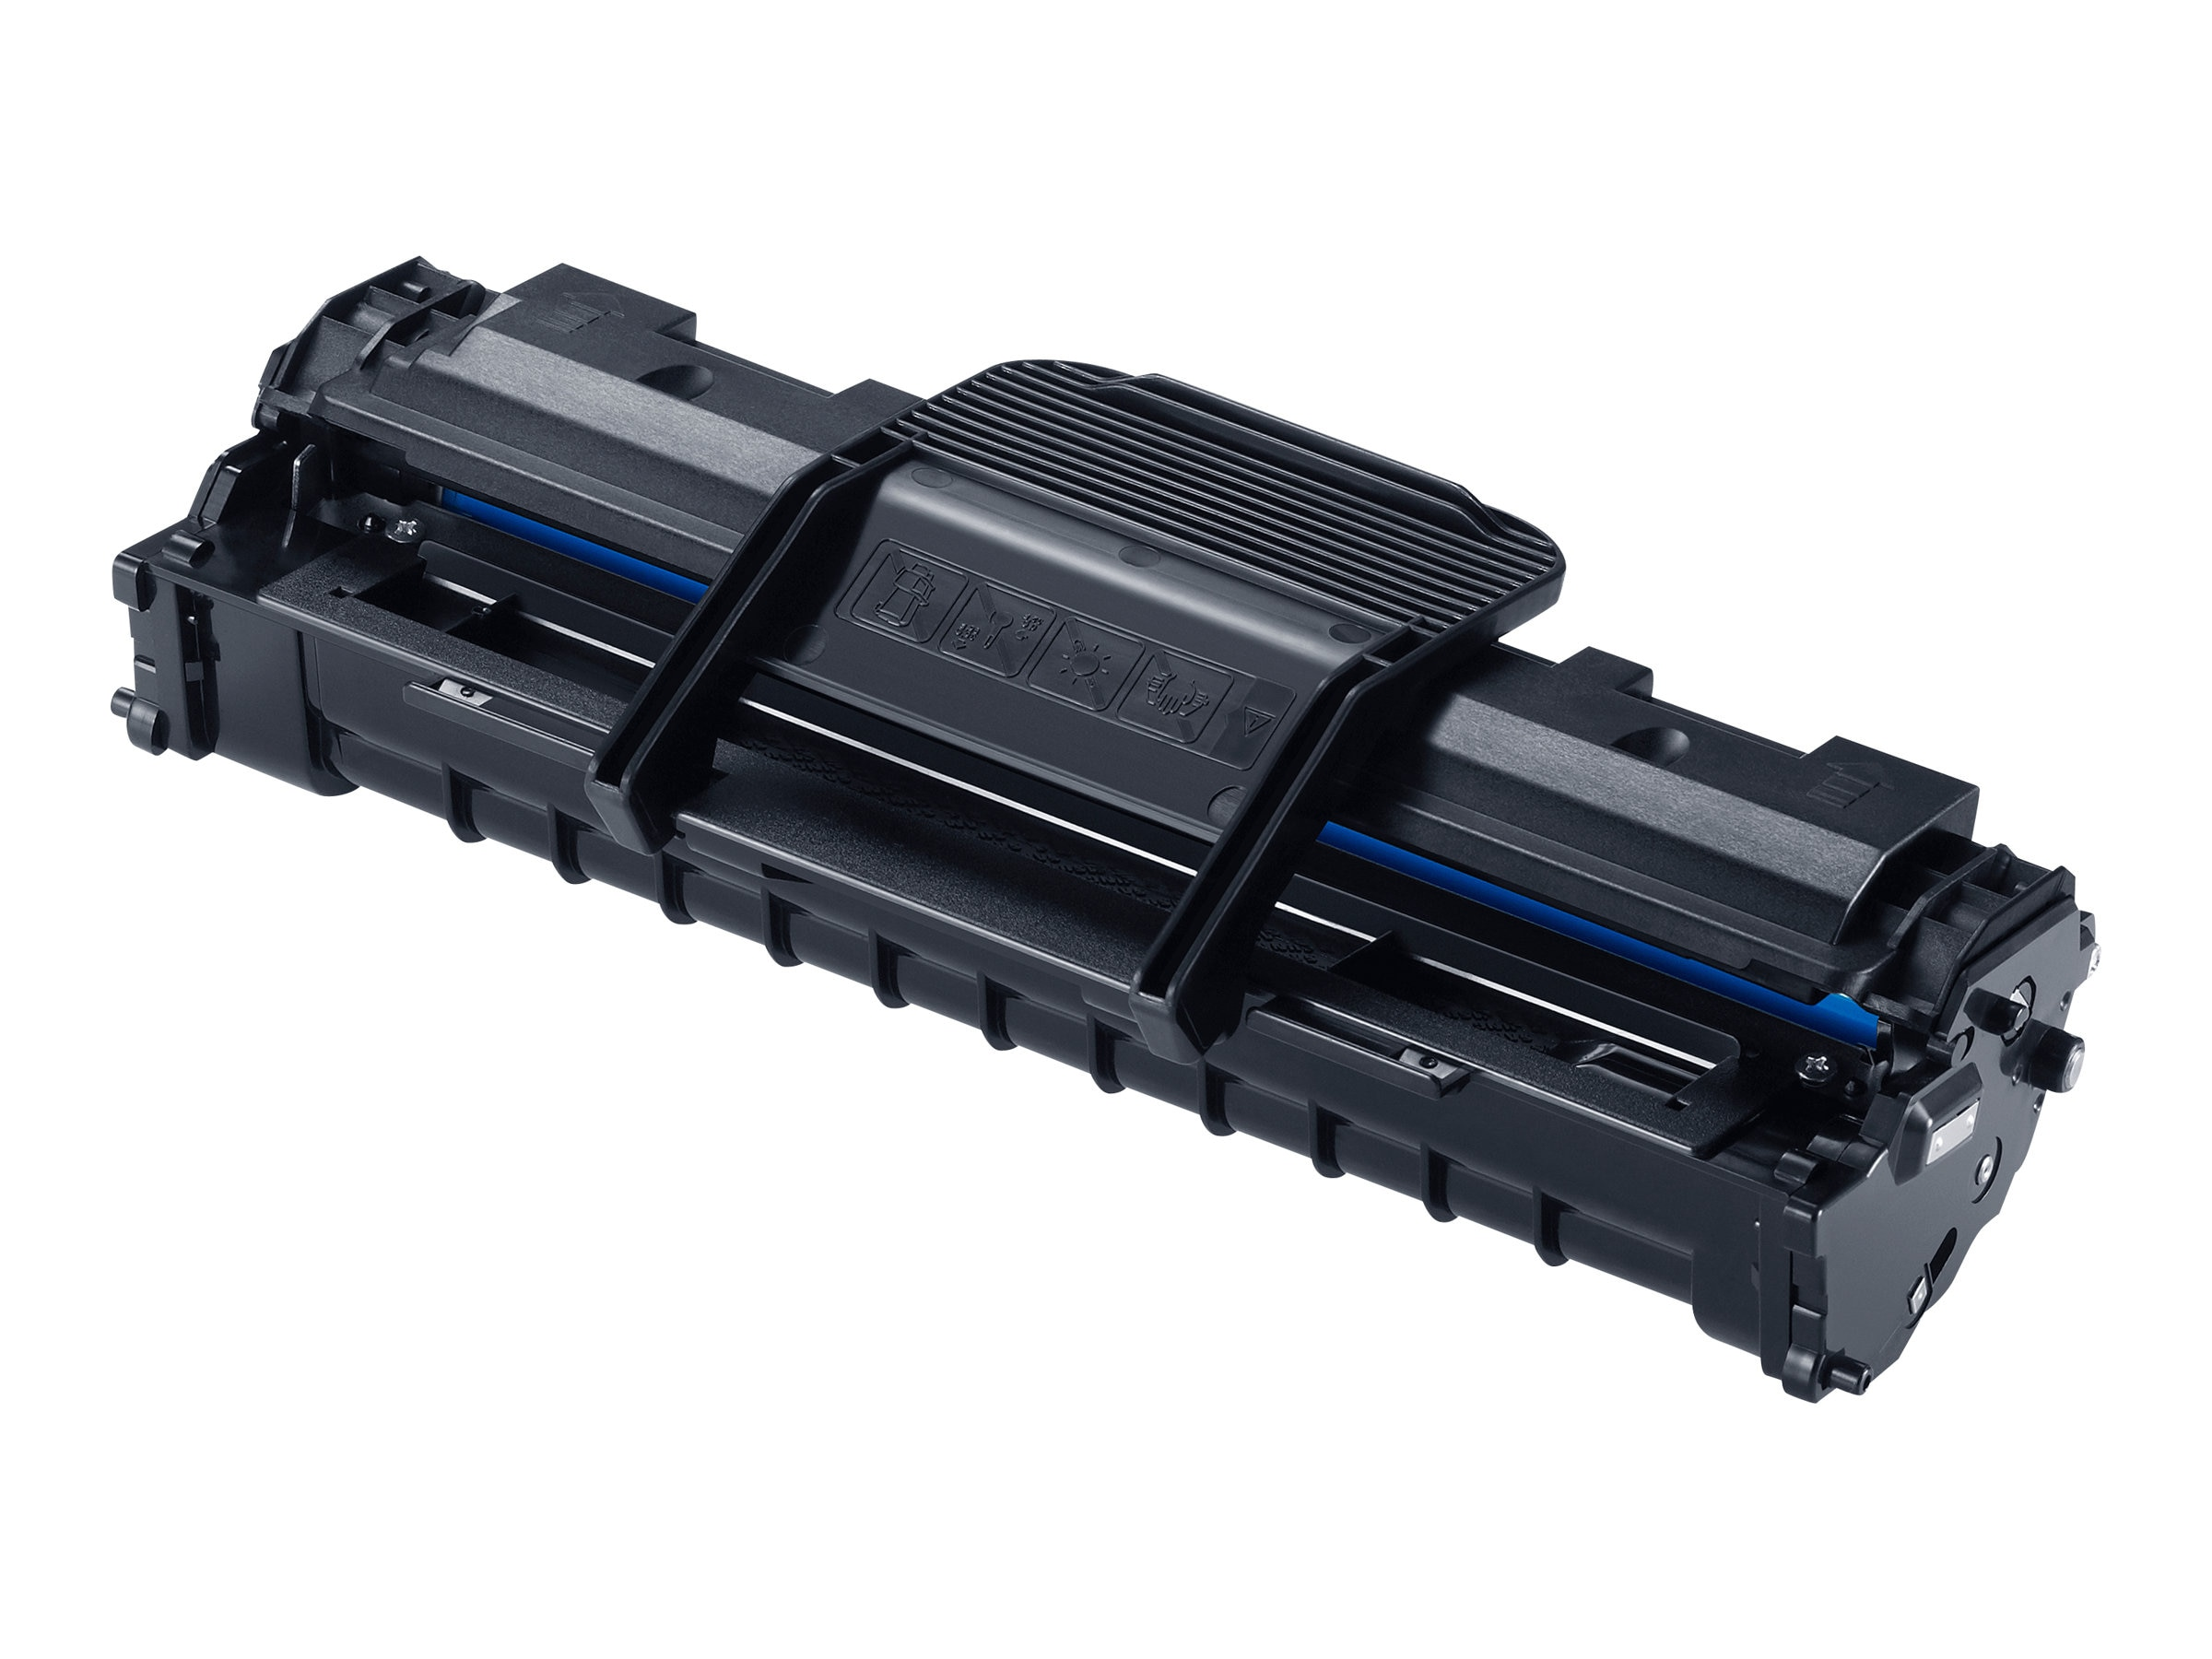 Samsung Black Toner Cartridge for ML-1610, ML-1615, ML-1620, ML-1625, ML-2010, ML-2015, ML-2020, ML-2510